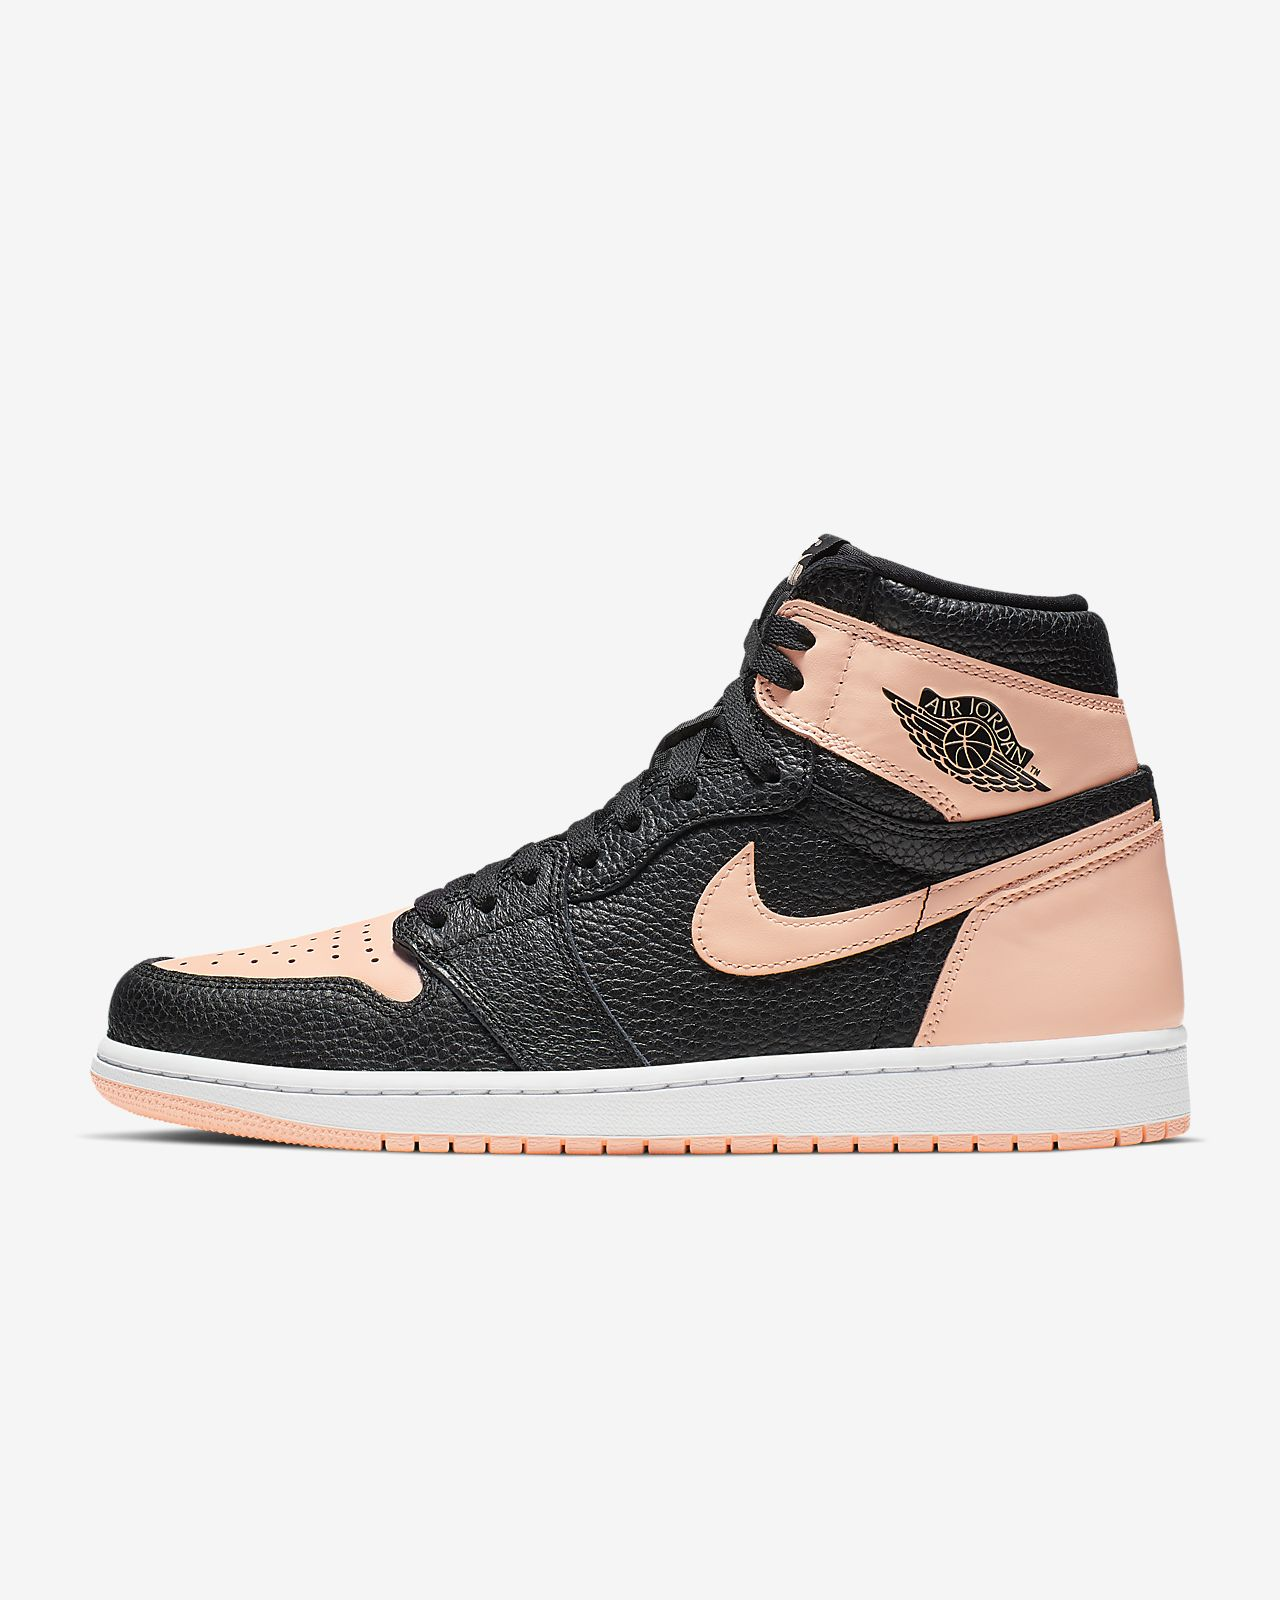 hot sales 71910 dc003 Low Resolution Air Jordan 1 Retro High OG Shoe Air Jordan 1 Retro High OG  Shoe